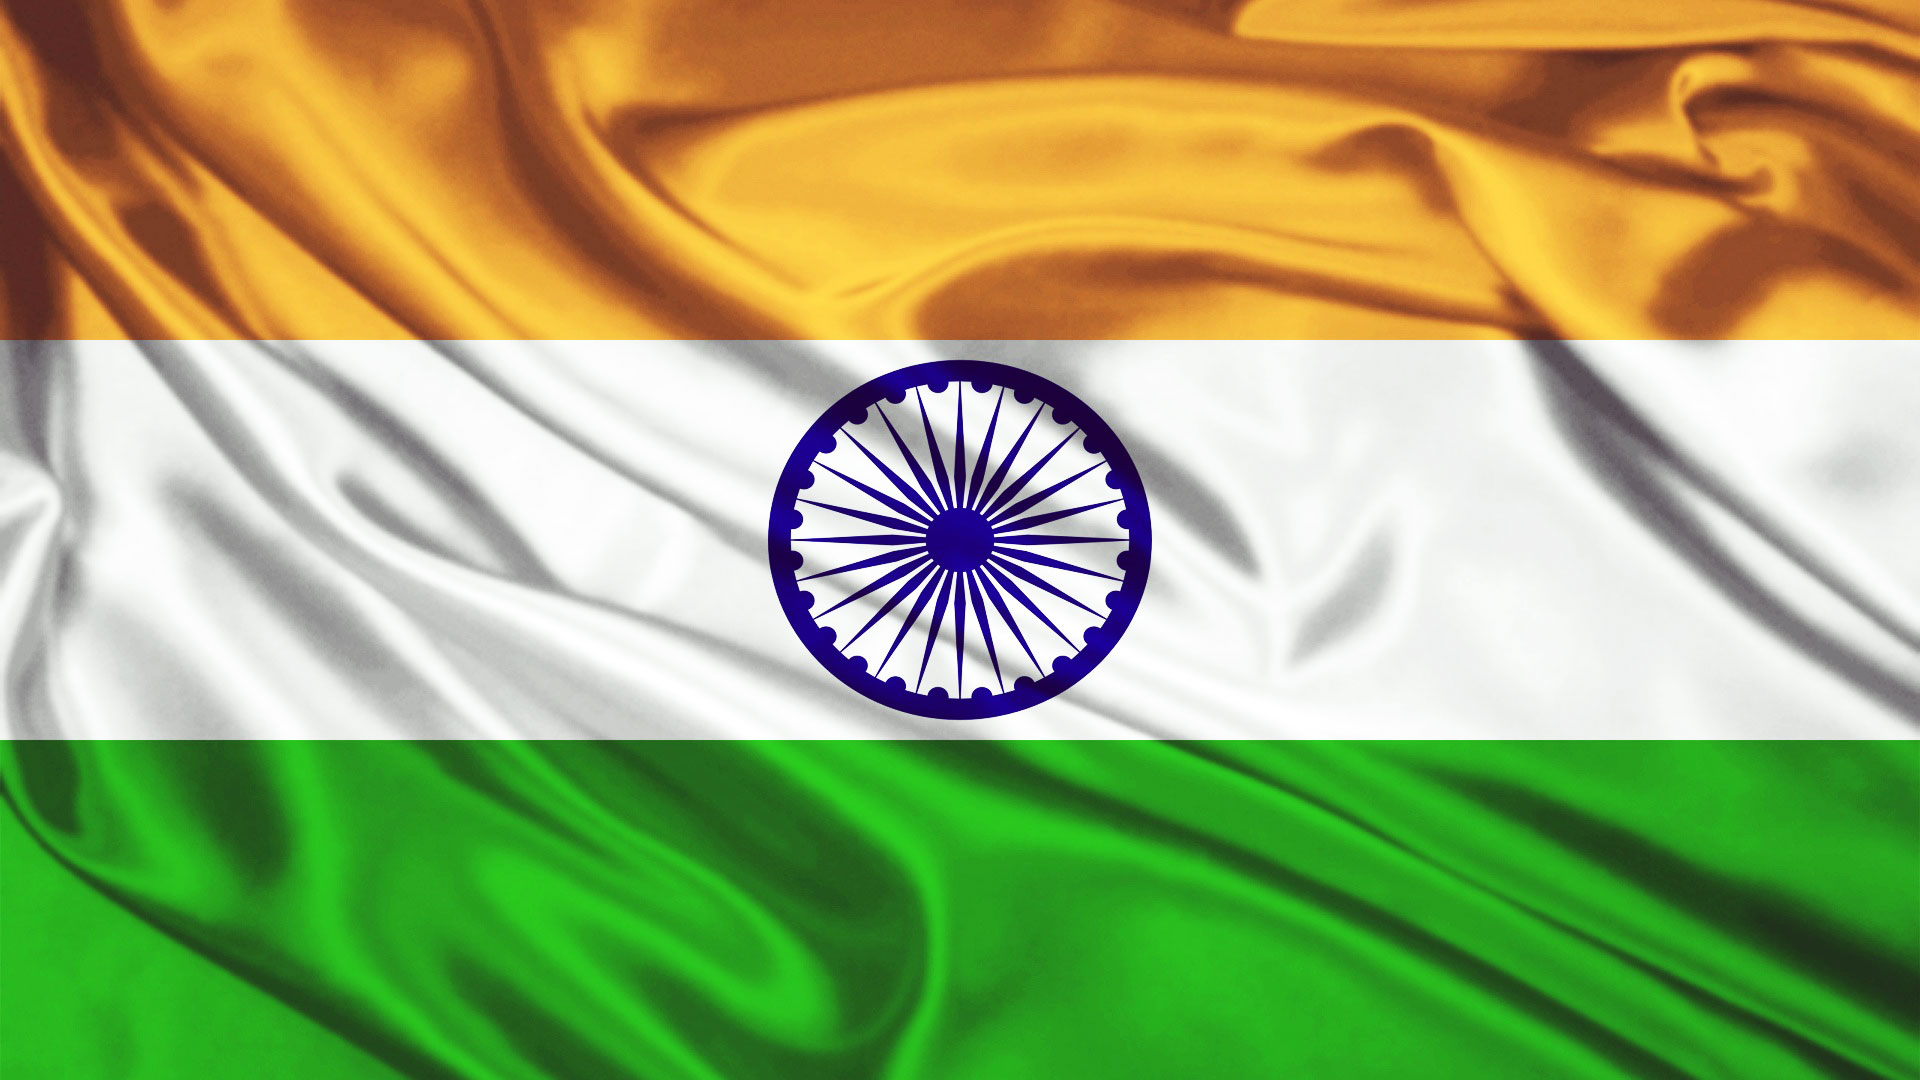 indian flag wallpapers & hd images – atulhost